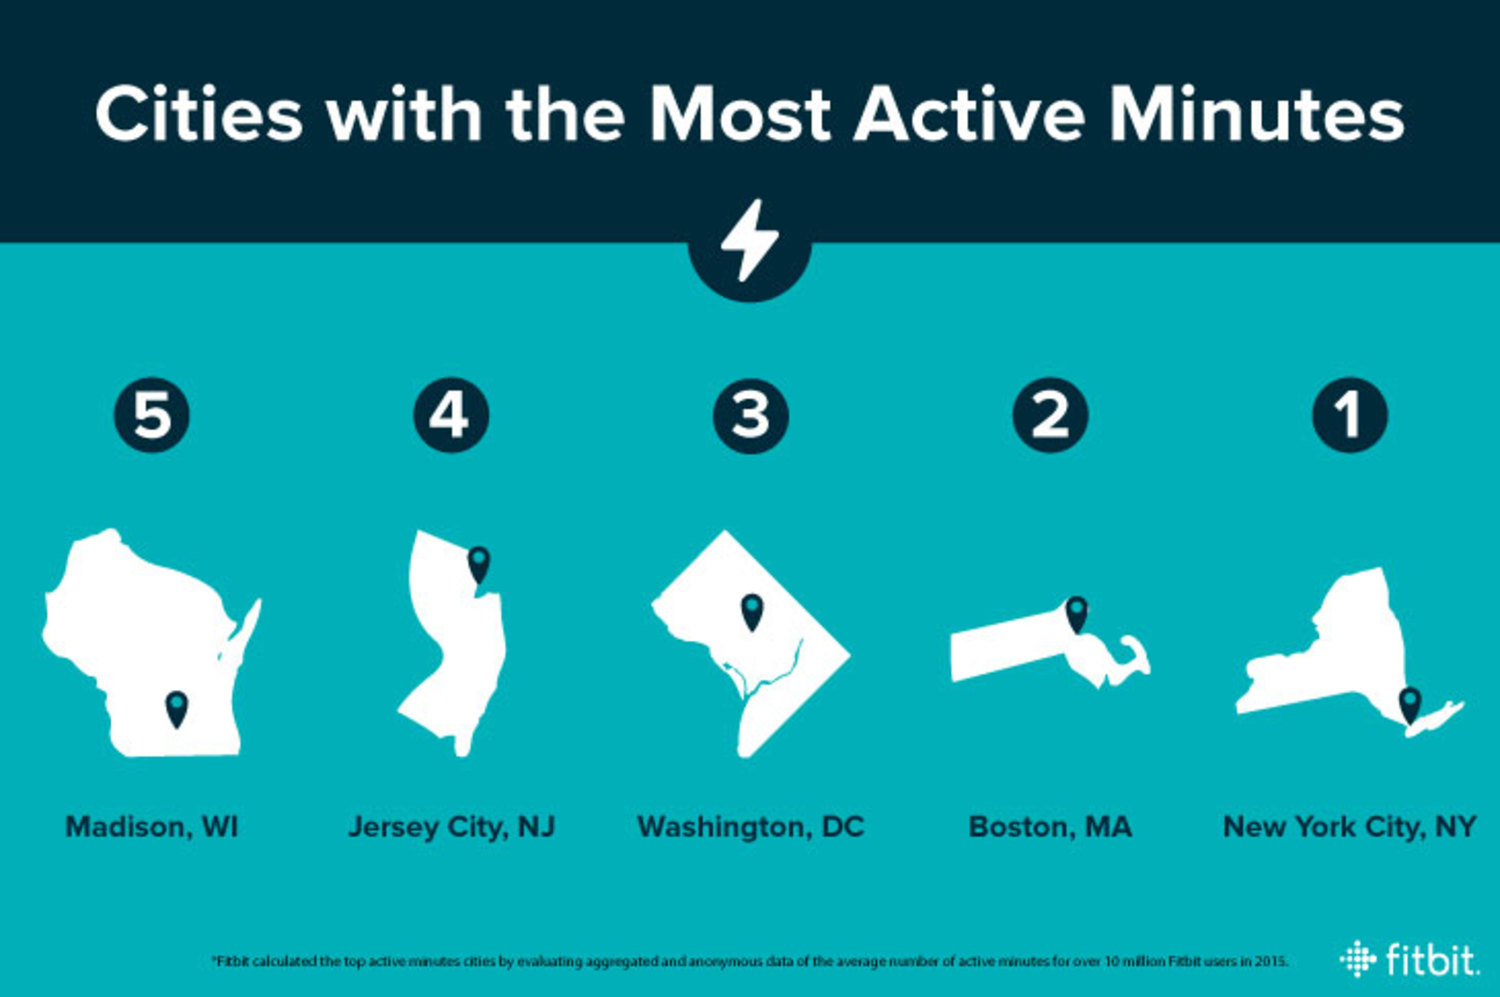 Cities With the Most Active Minutes